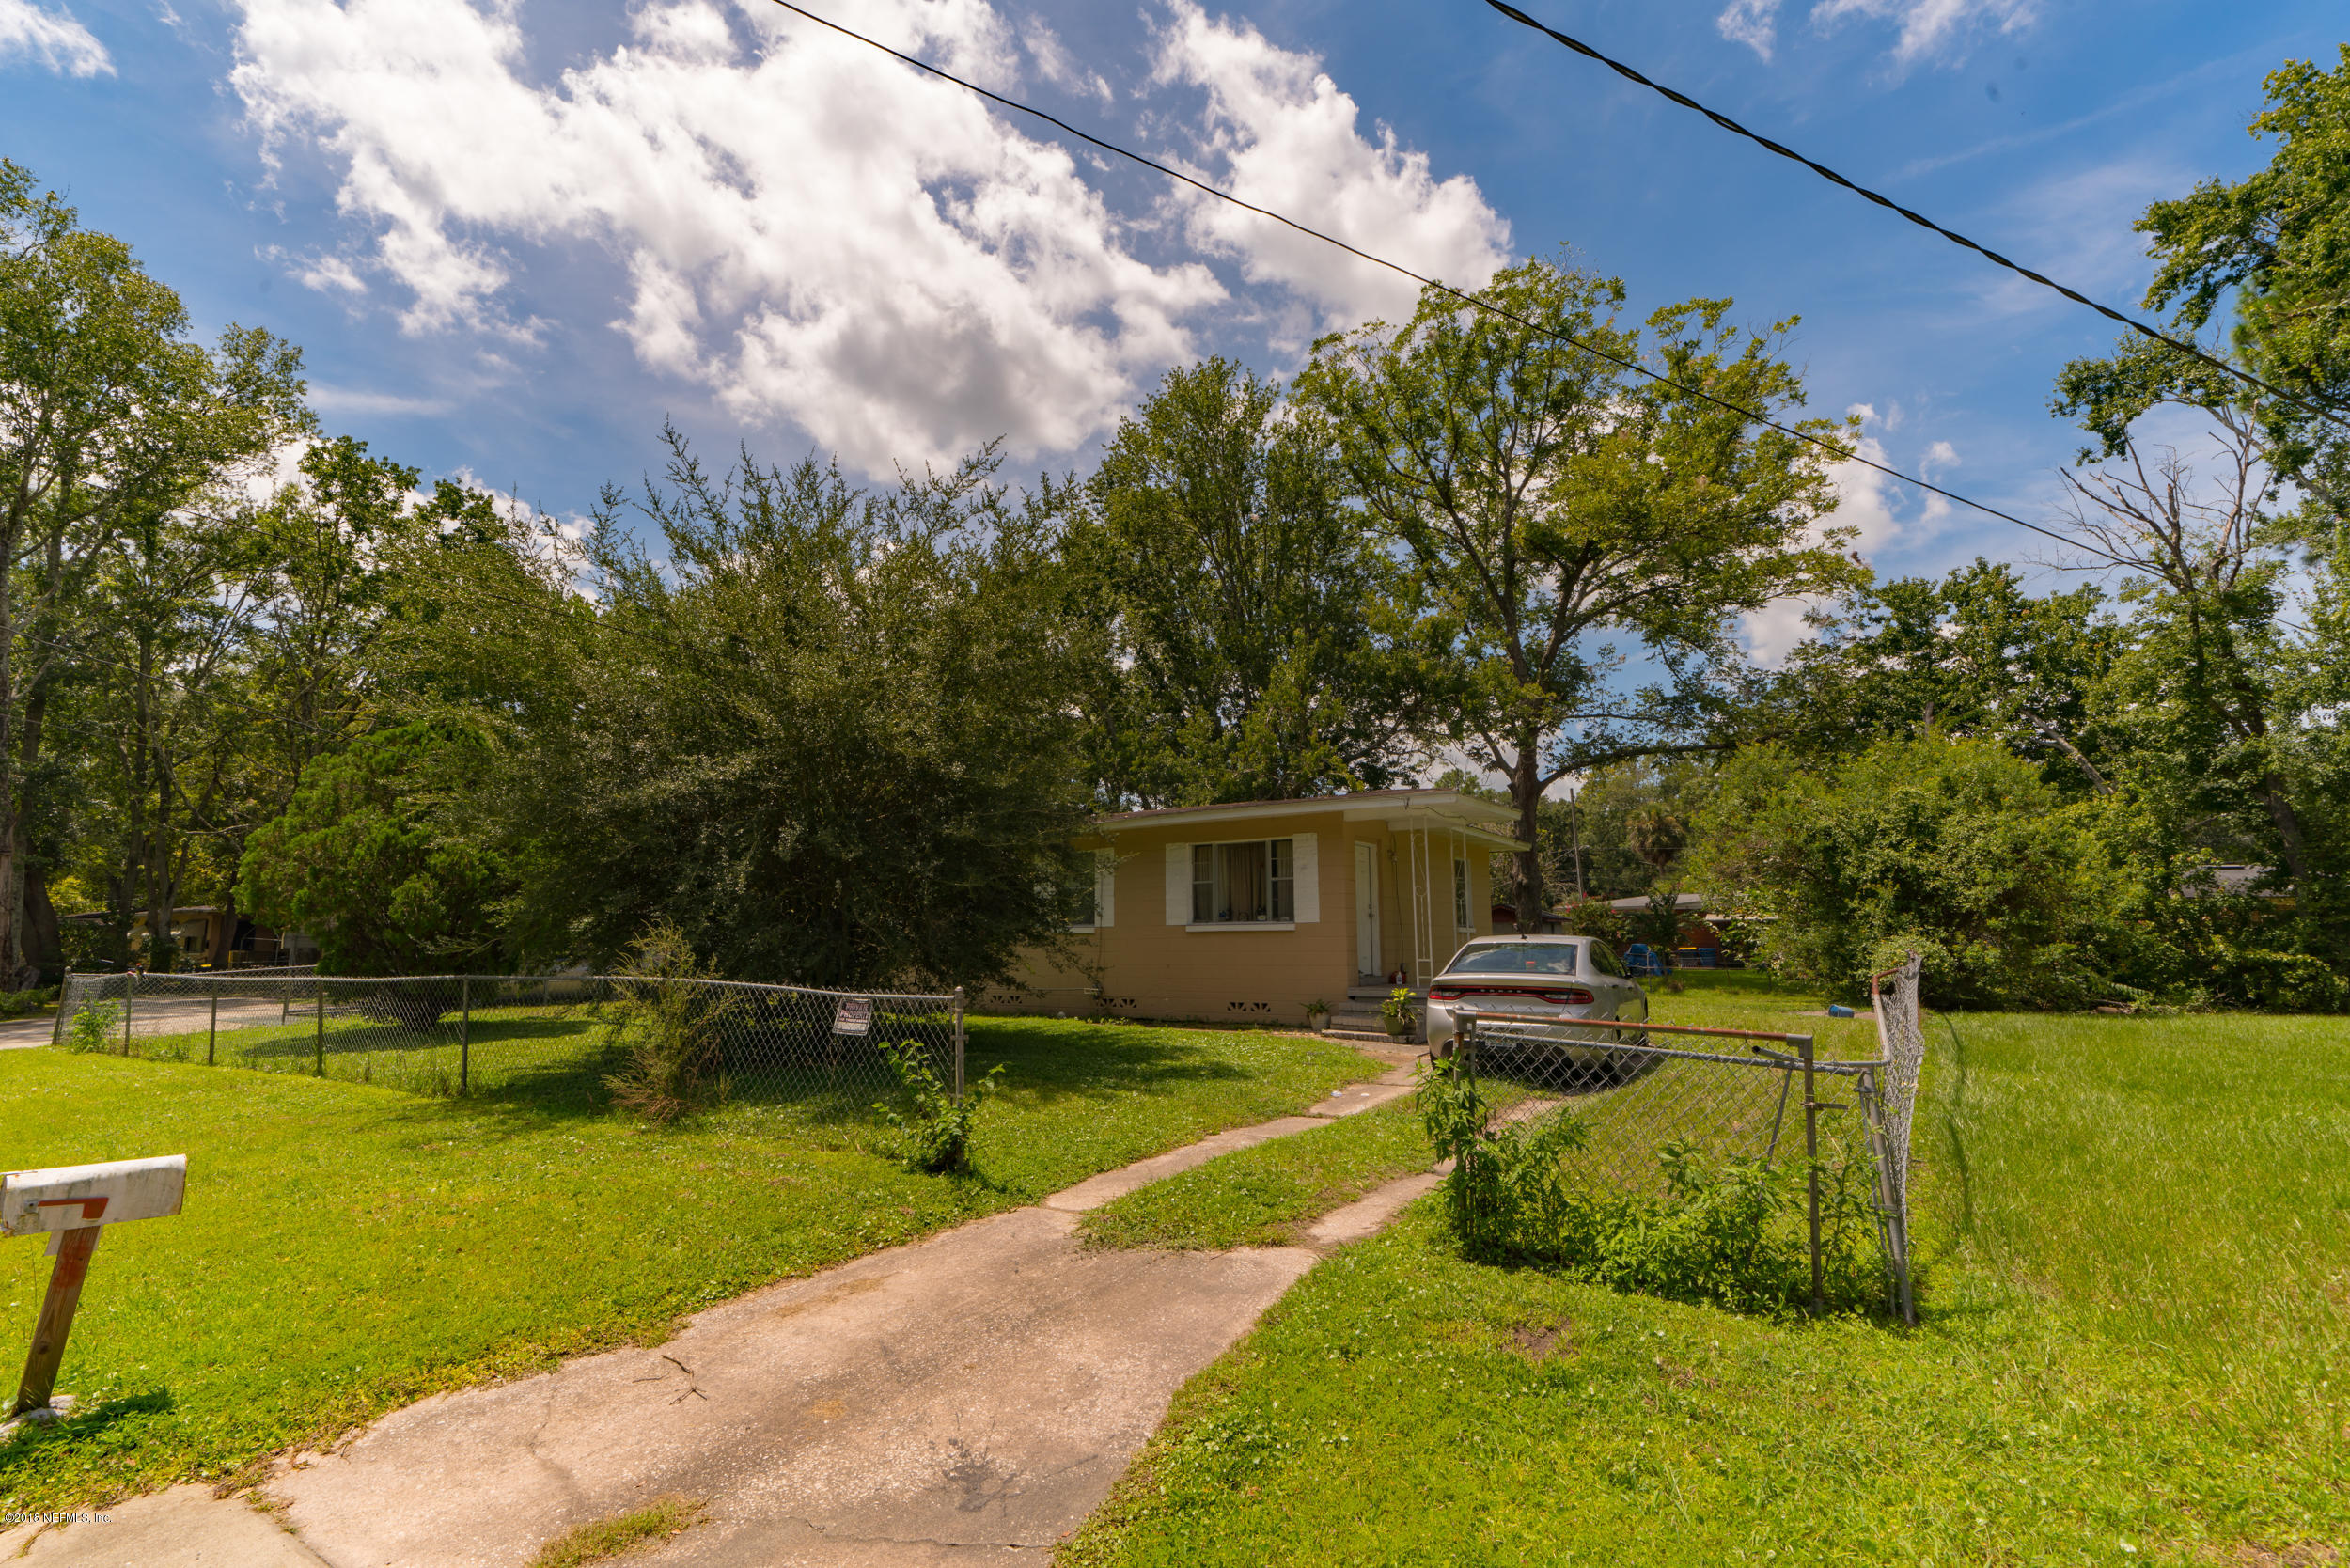 5618 SILVERDALE, JACKSONVILLE, FLORIDA 32209, 3 Bedrooms Bedrooms, ,1 BathroomBathrooms,Residential - single family,For sale,SILVERDALE,950312